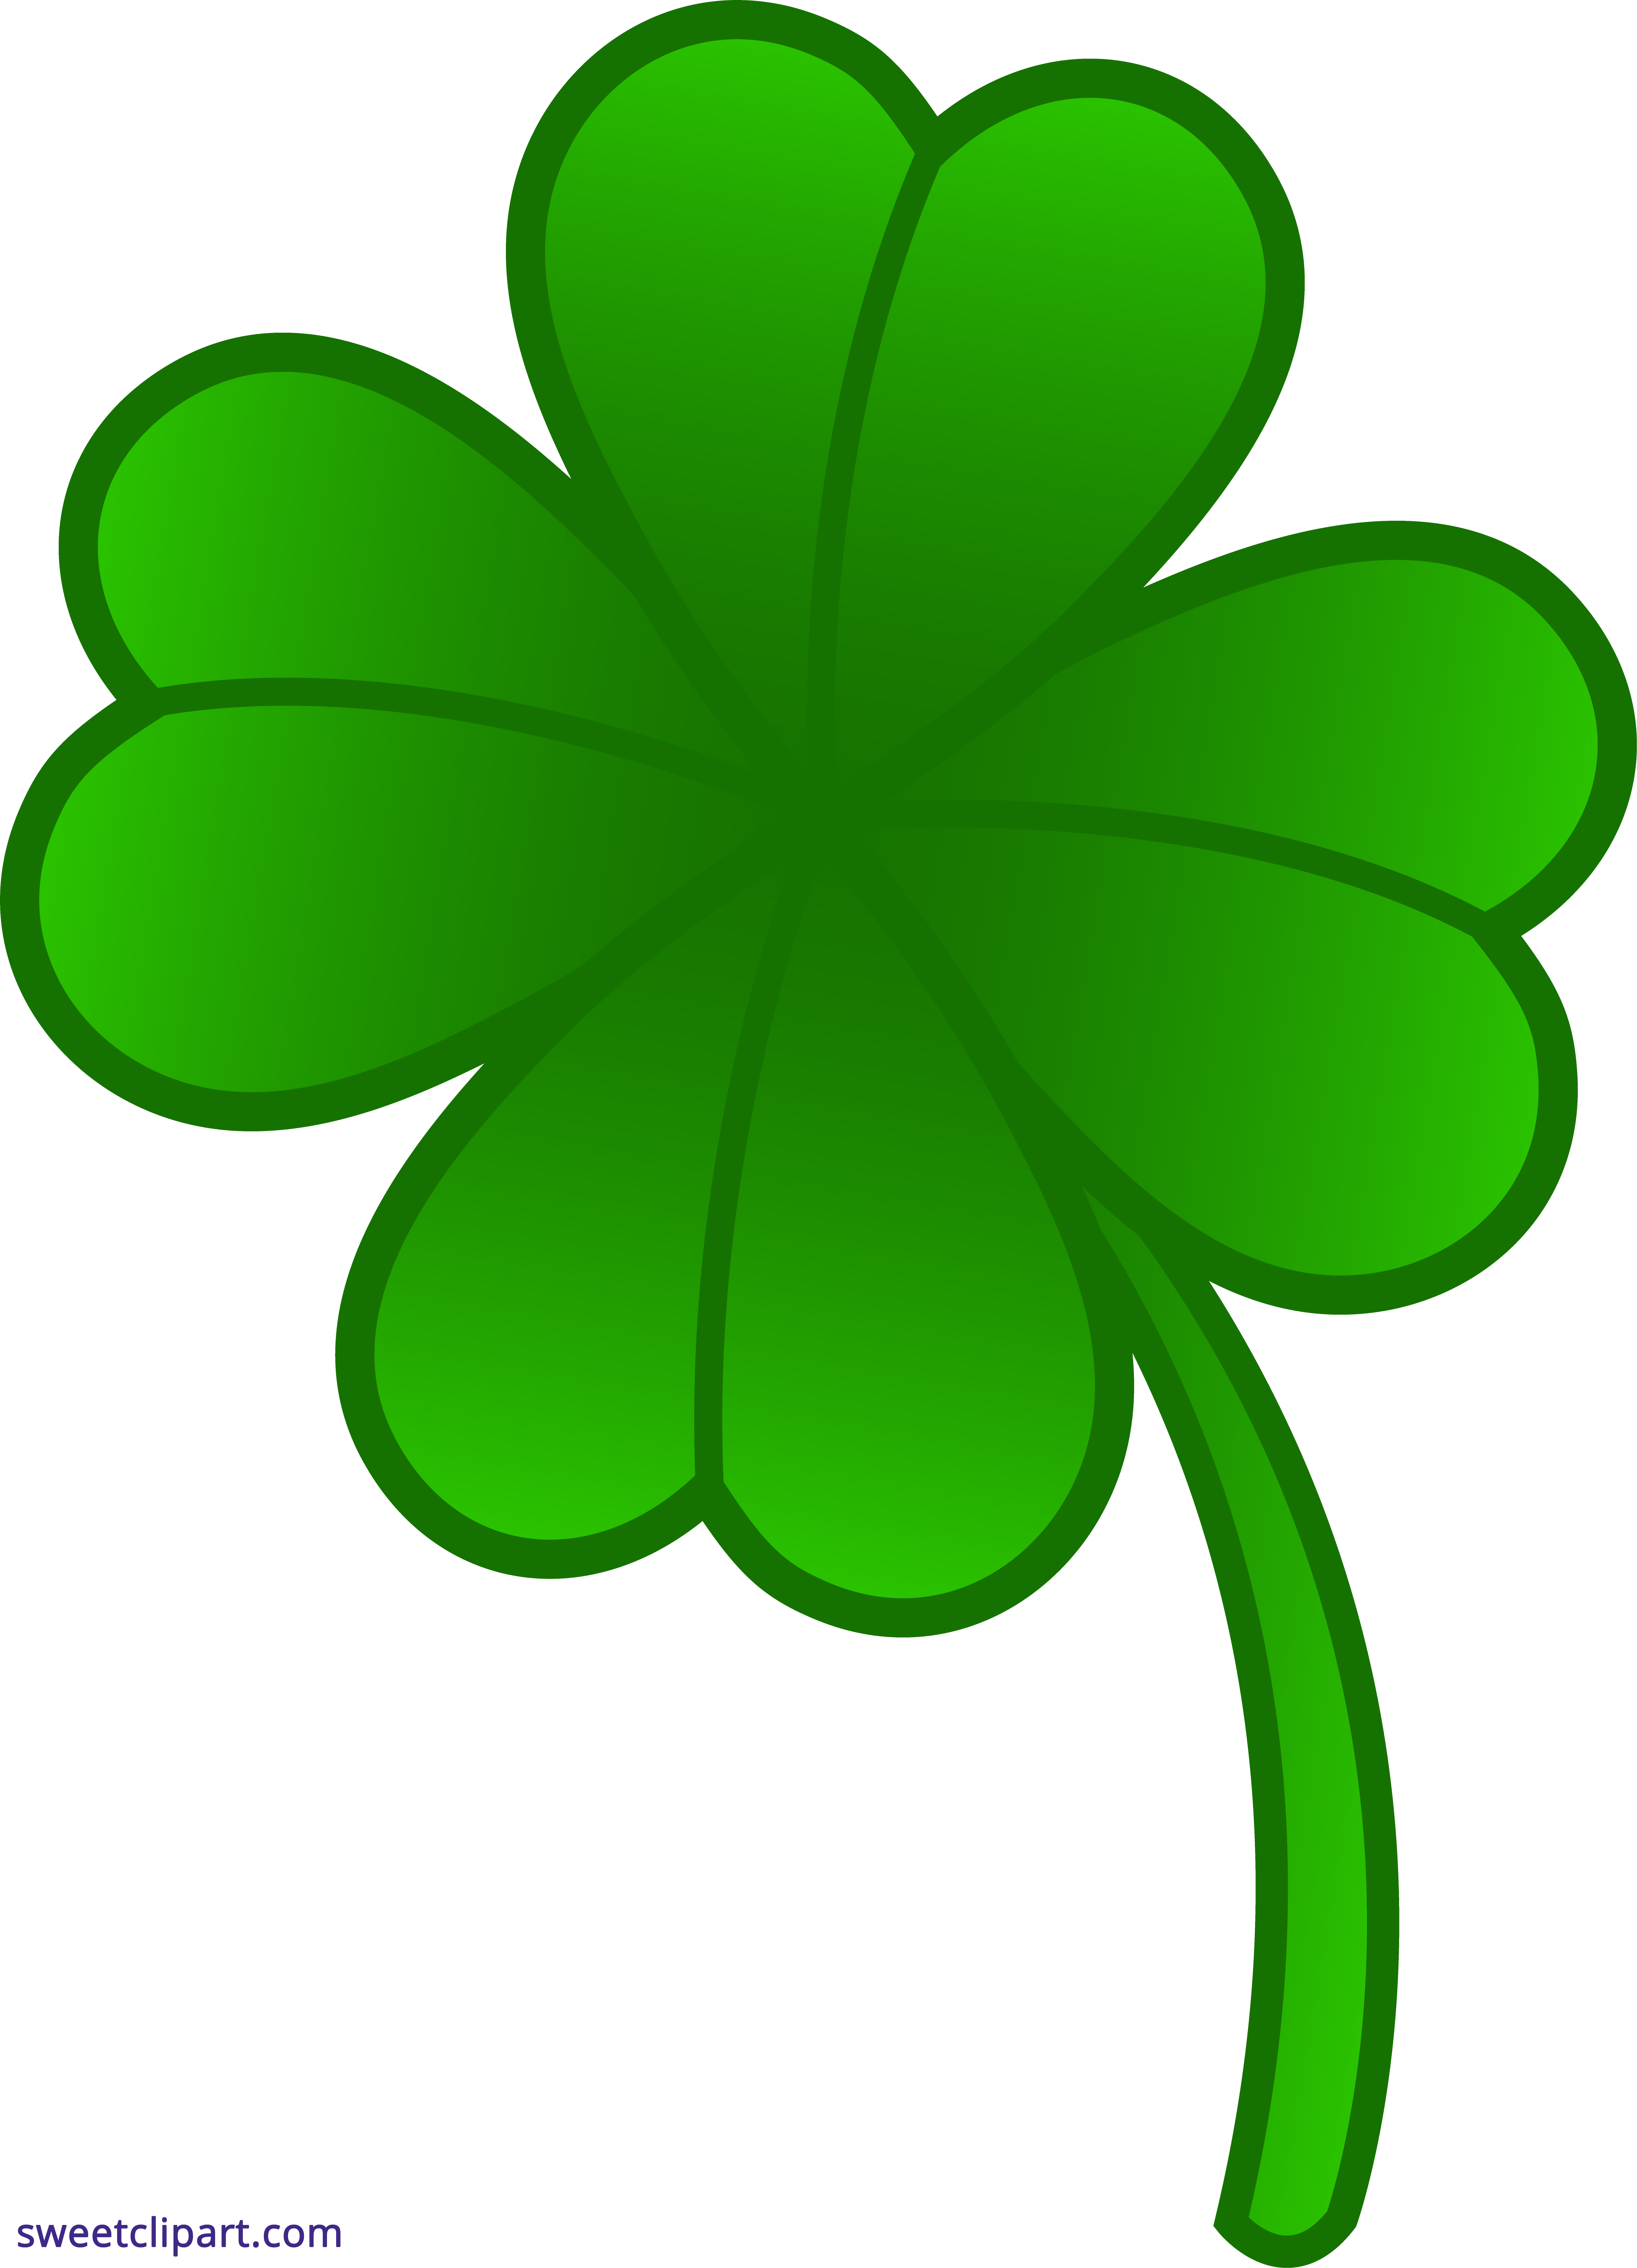 Four leaf clover sweet. 4 clipart green